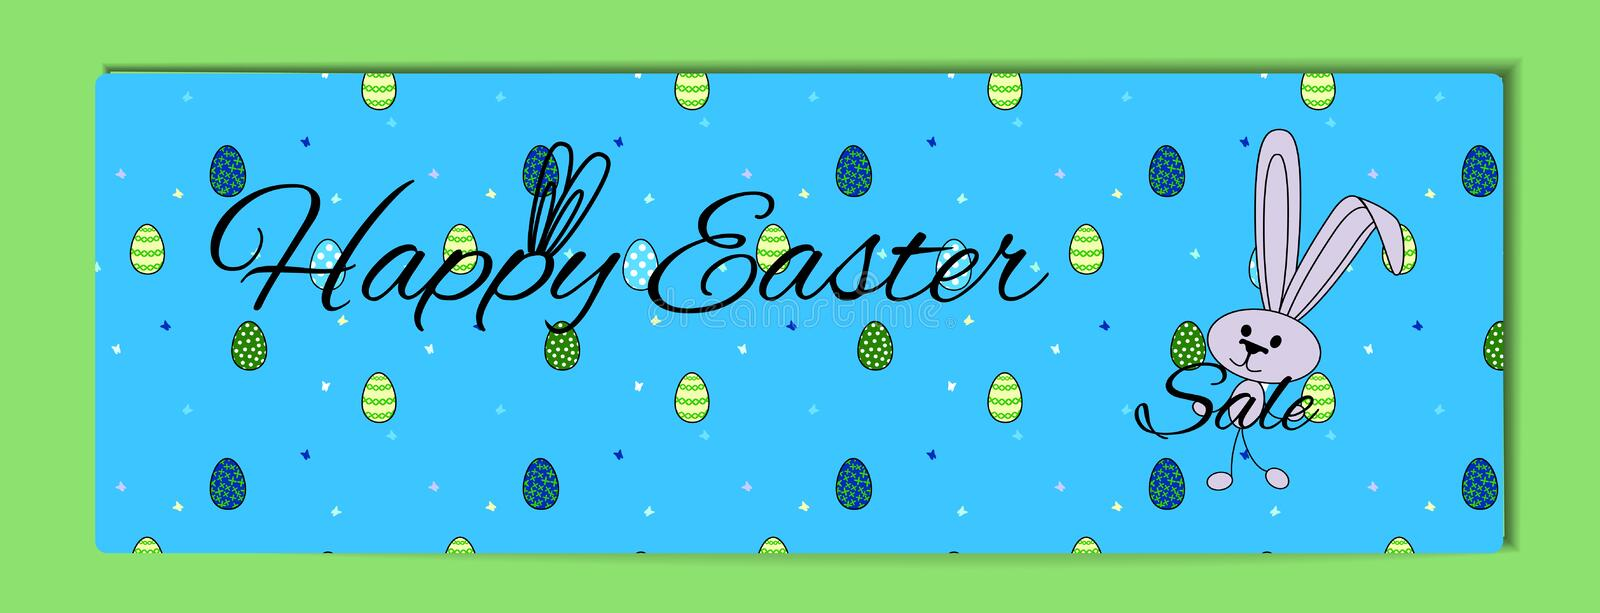 Easter bunny cover. Horizontal blue banner with green painted eggs, butterflys and a hare. Cartoon rabbit for hunt egg royalty free illustration